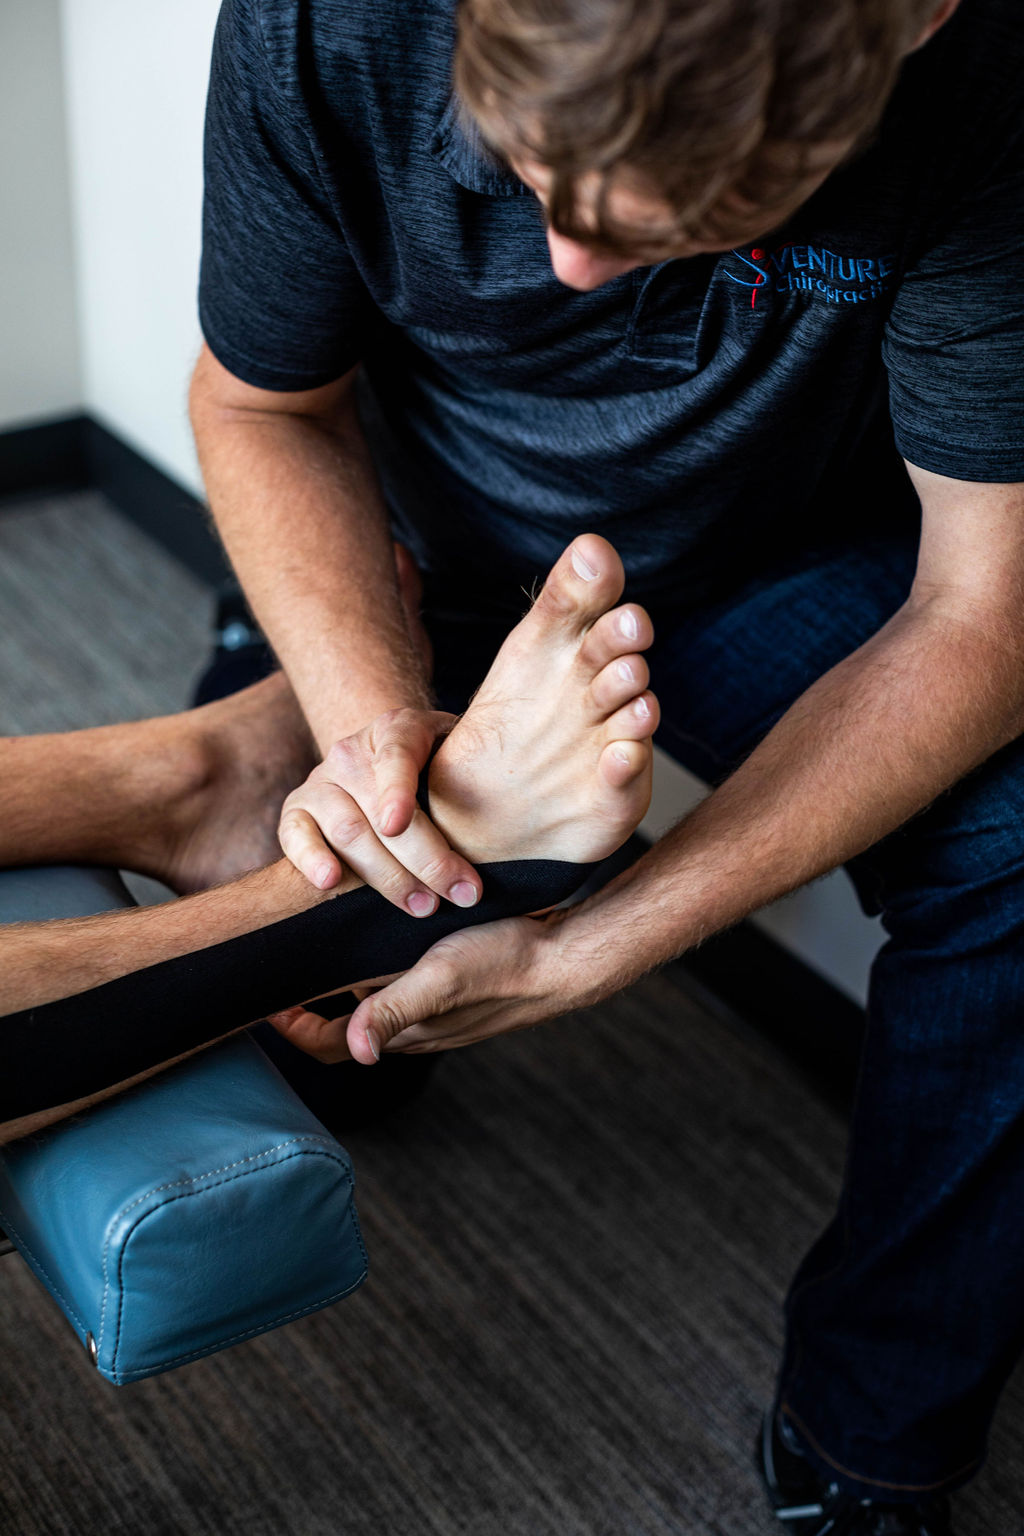 Dr. Chris is adjusting an athletes ankle to improve the motion after an ankle sprain.